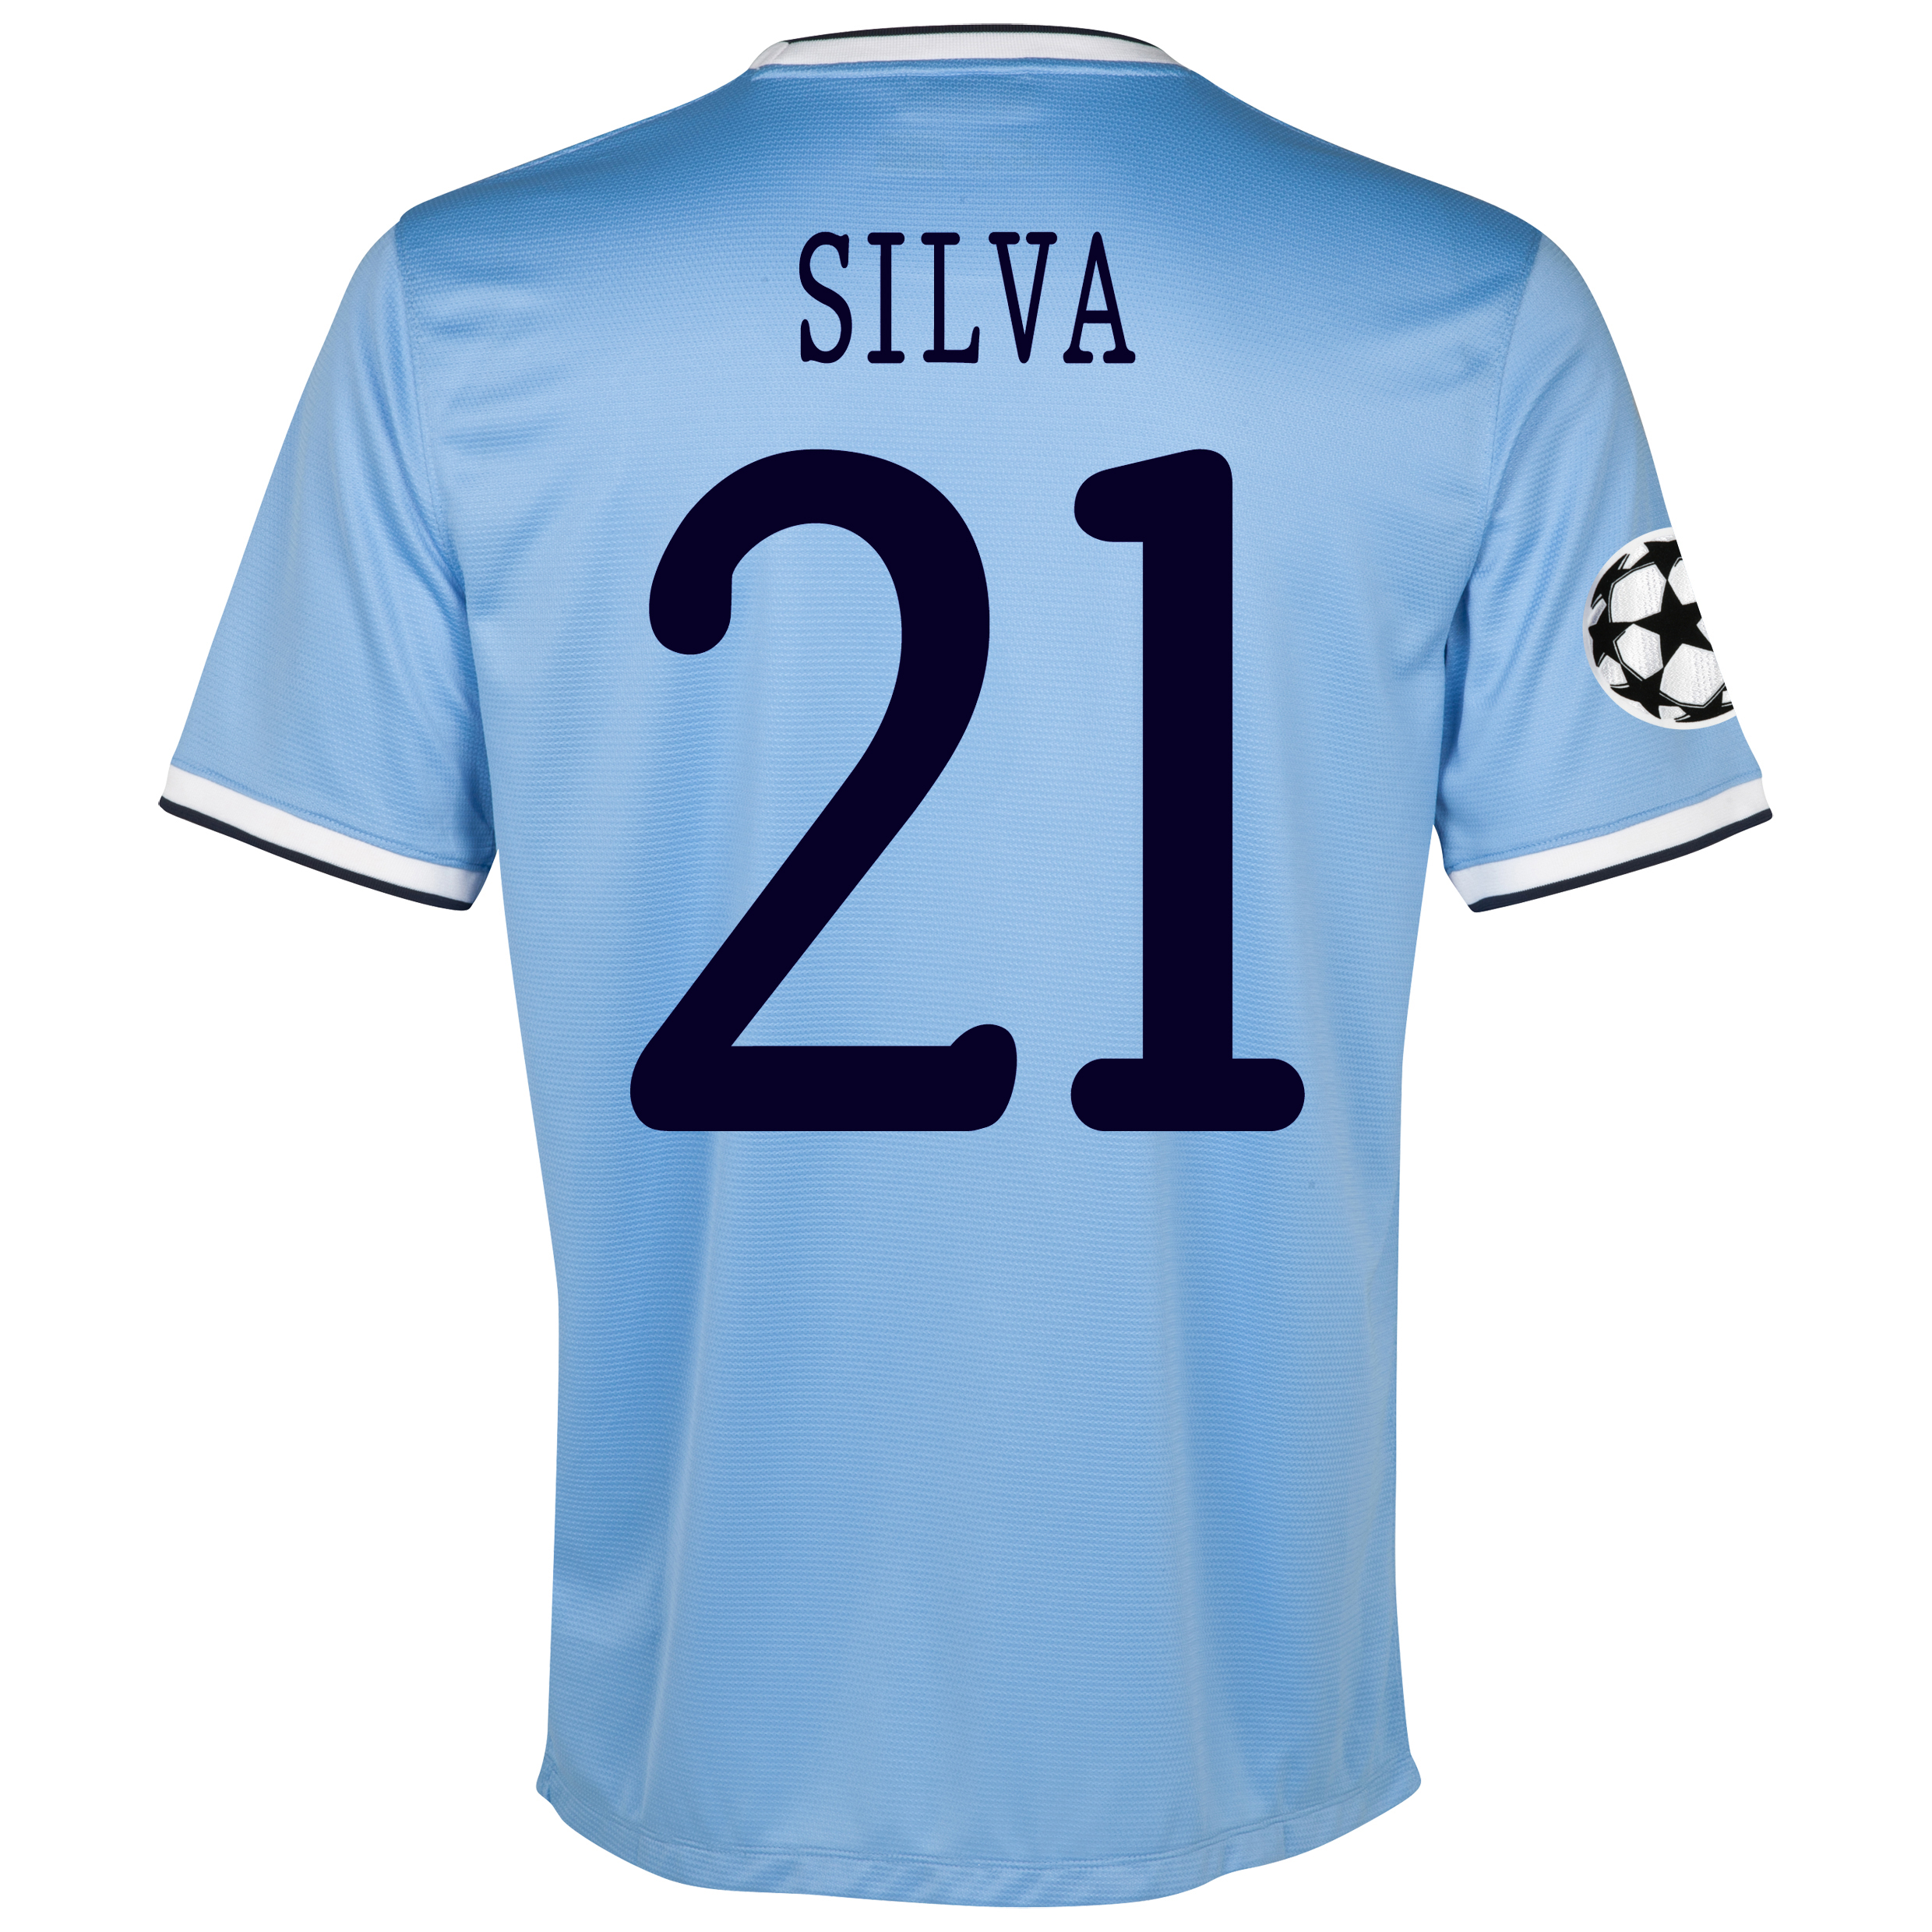 Manchester City UEFA Champions League Home Shirt 2013/14 with Silva 21 printing